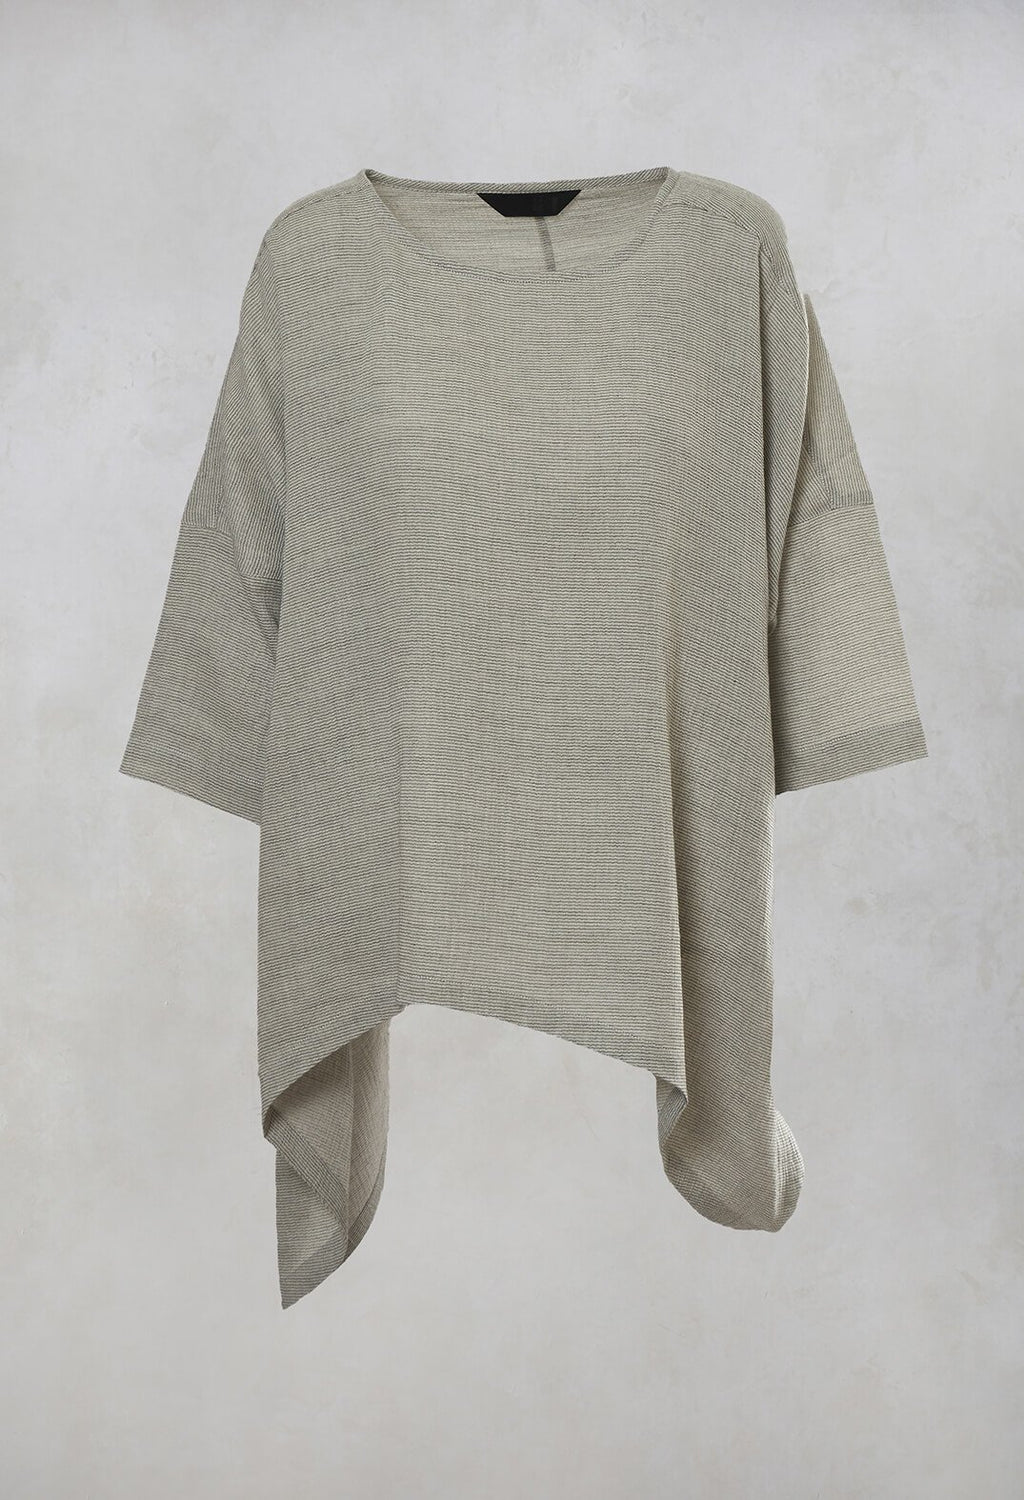 Boxy Top in Monotone